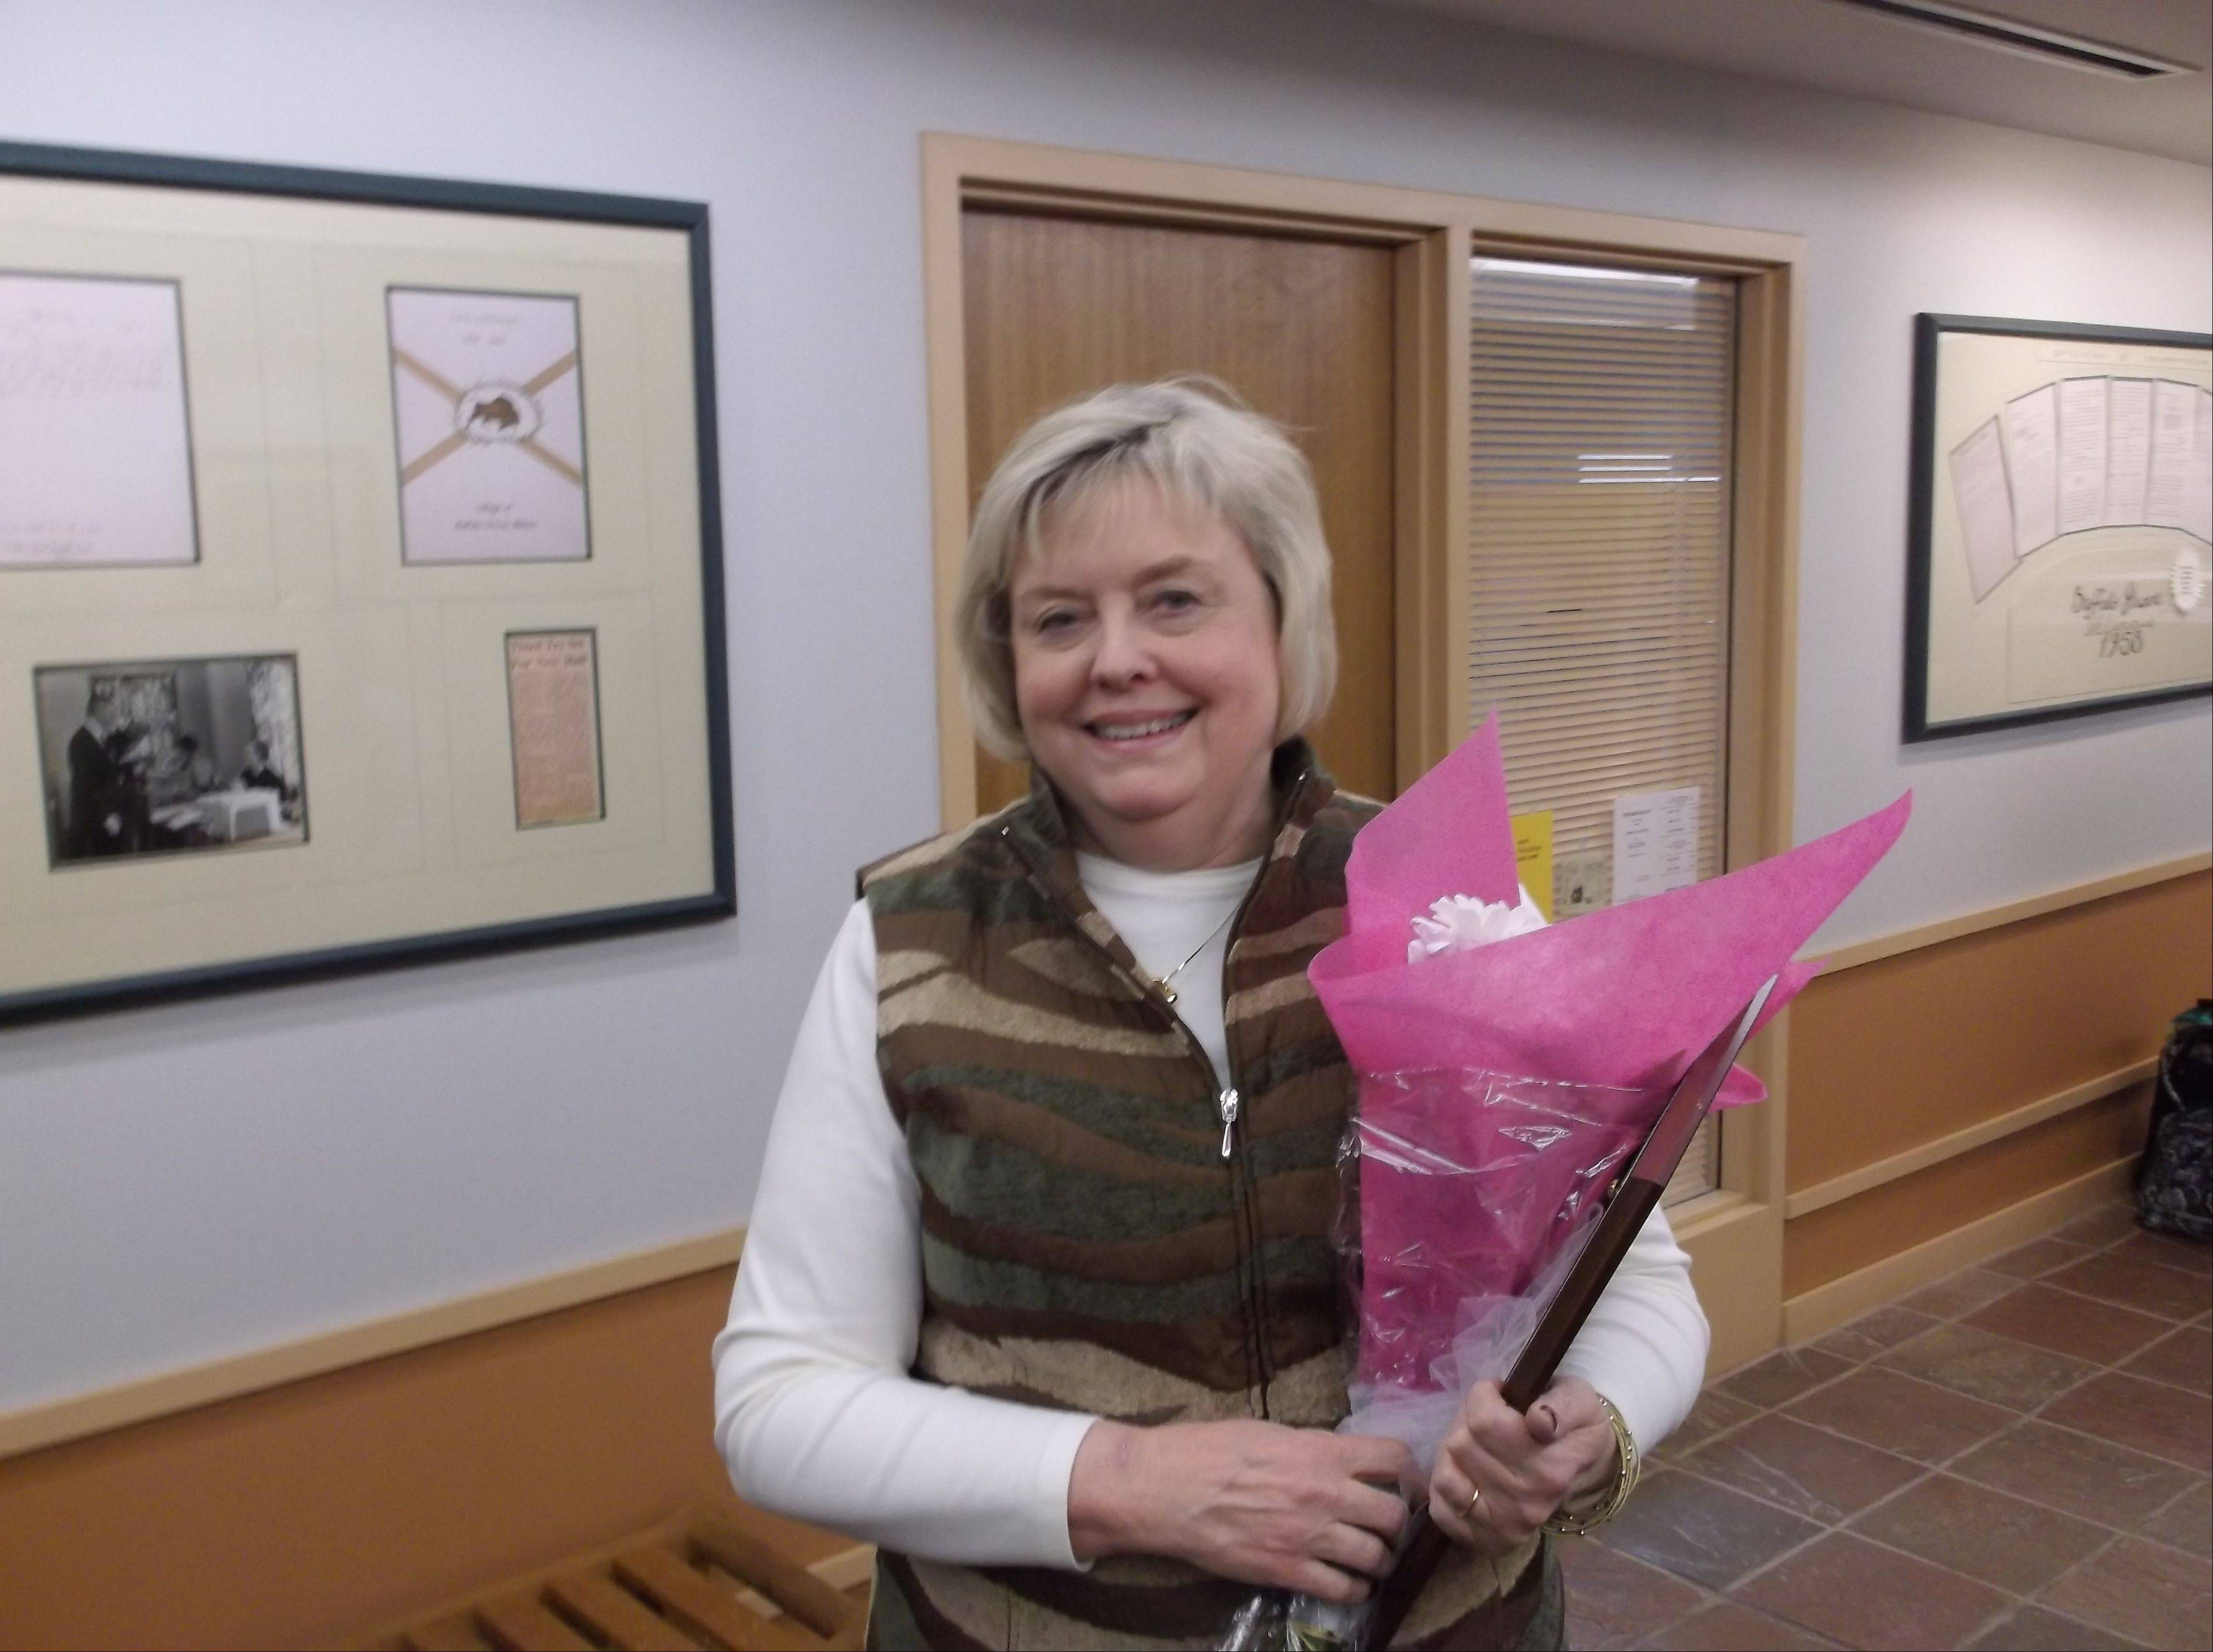 Buffalo Grove Deputy Village Clerk Jane Olson was honored at this week's village board meeting for her 25 years in the job. She's retiring in March.